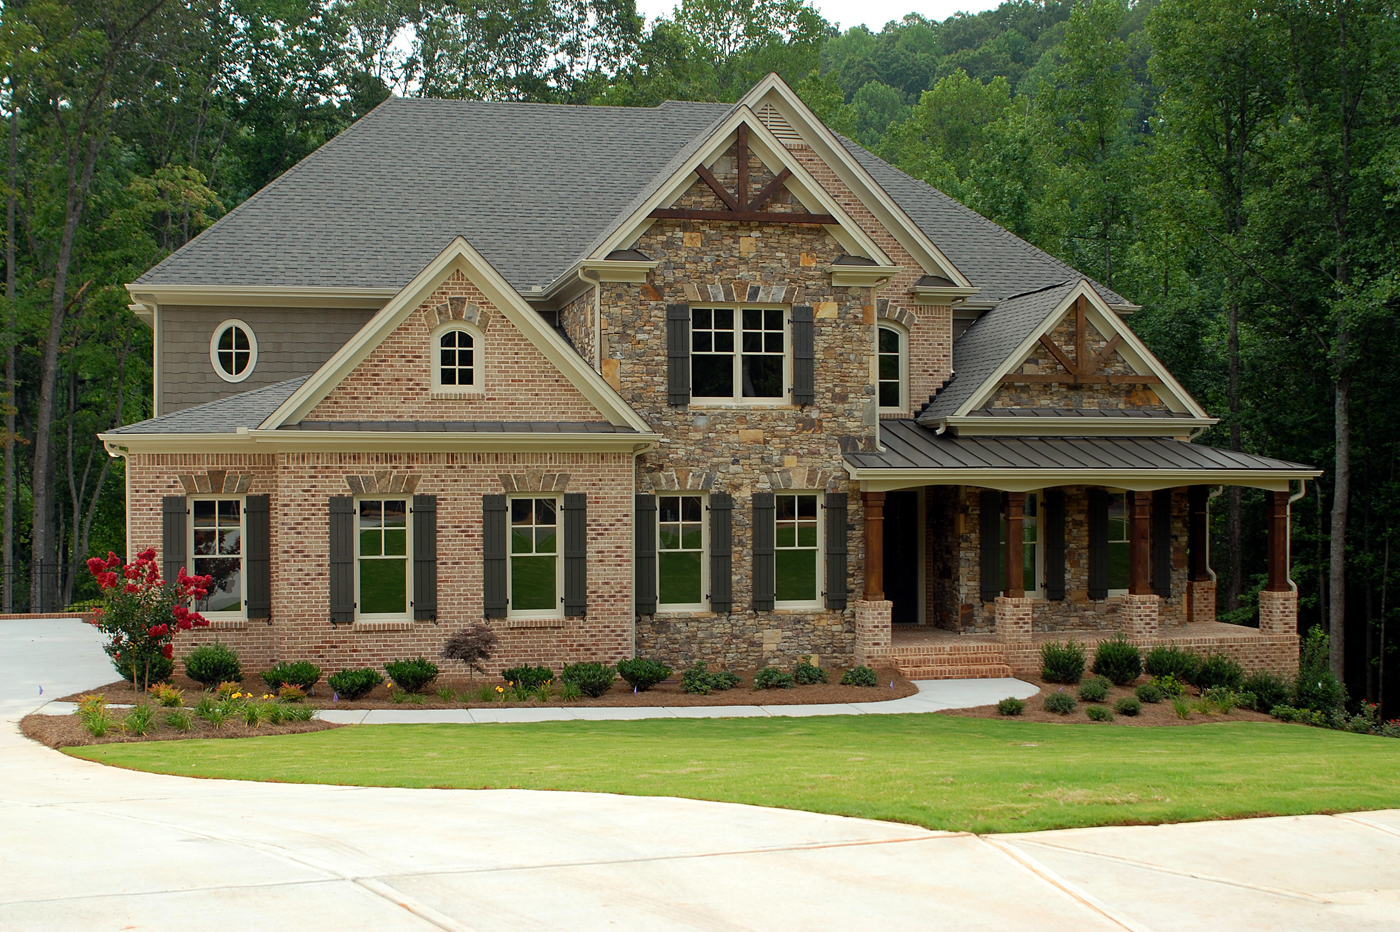 beautiful house | Be Informed Inspections | Dallas Home Inspections